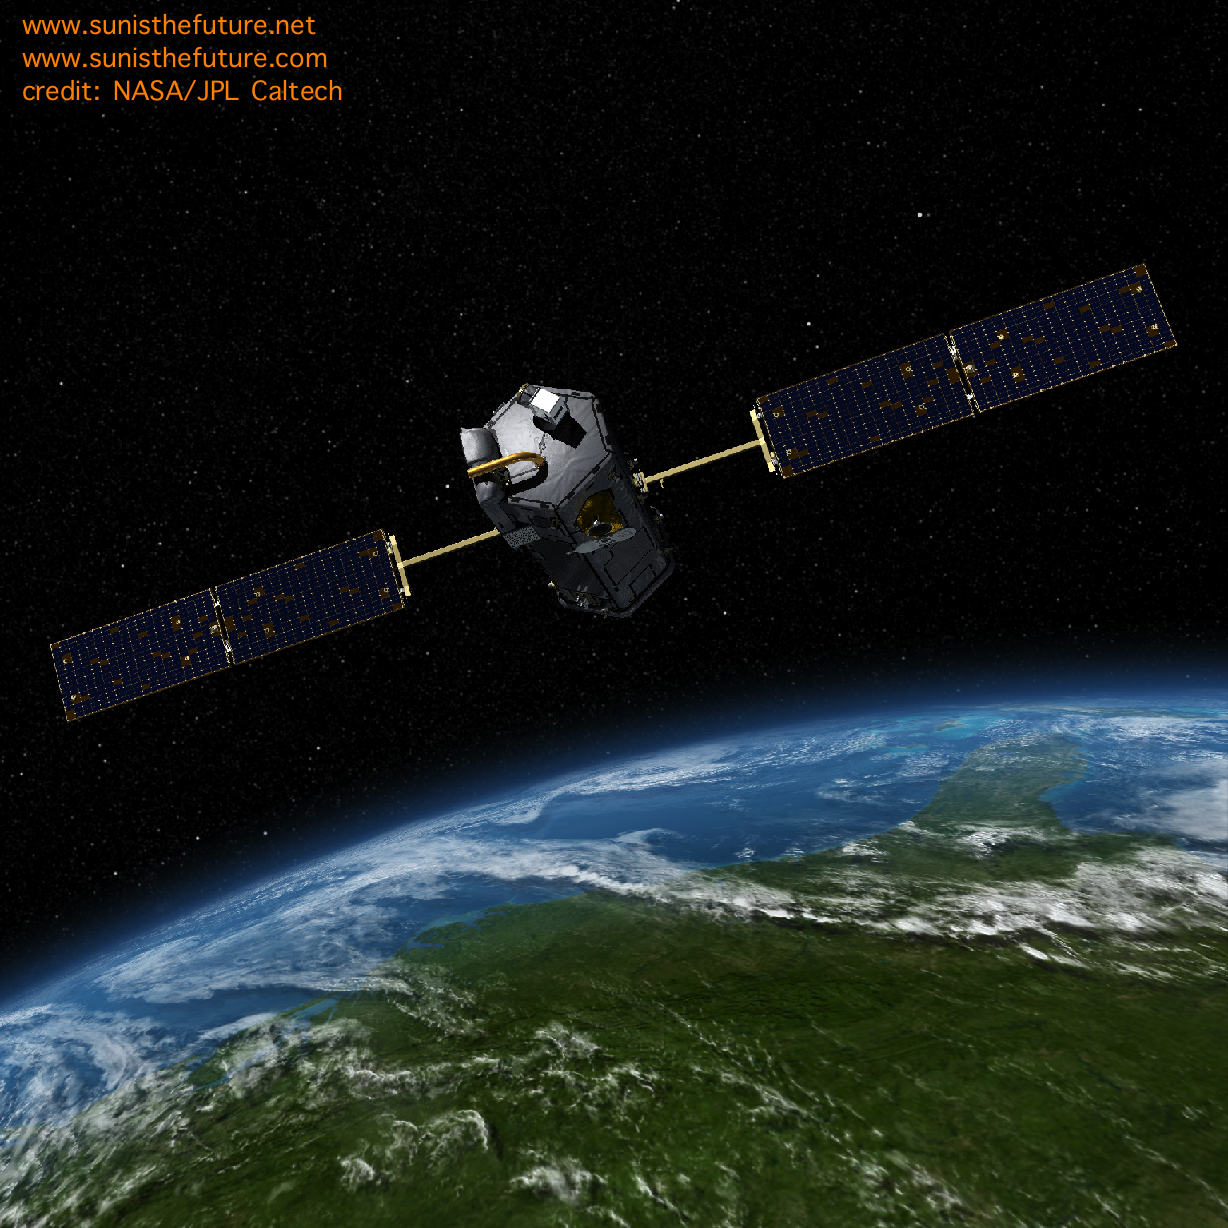 OCO-2 in space credit NASA:JPL Caltech at Sunshine Online Store